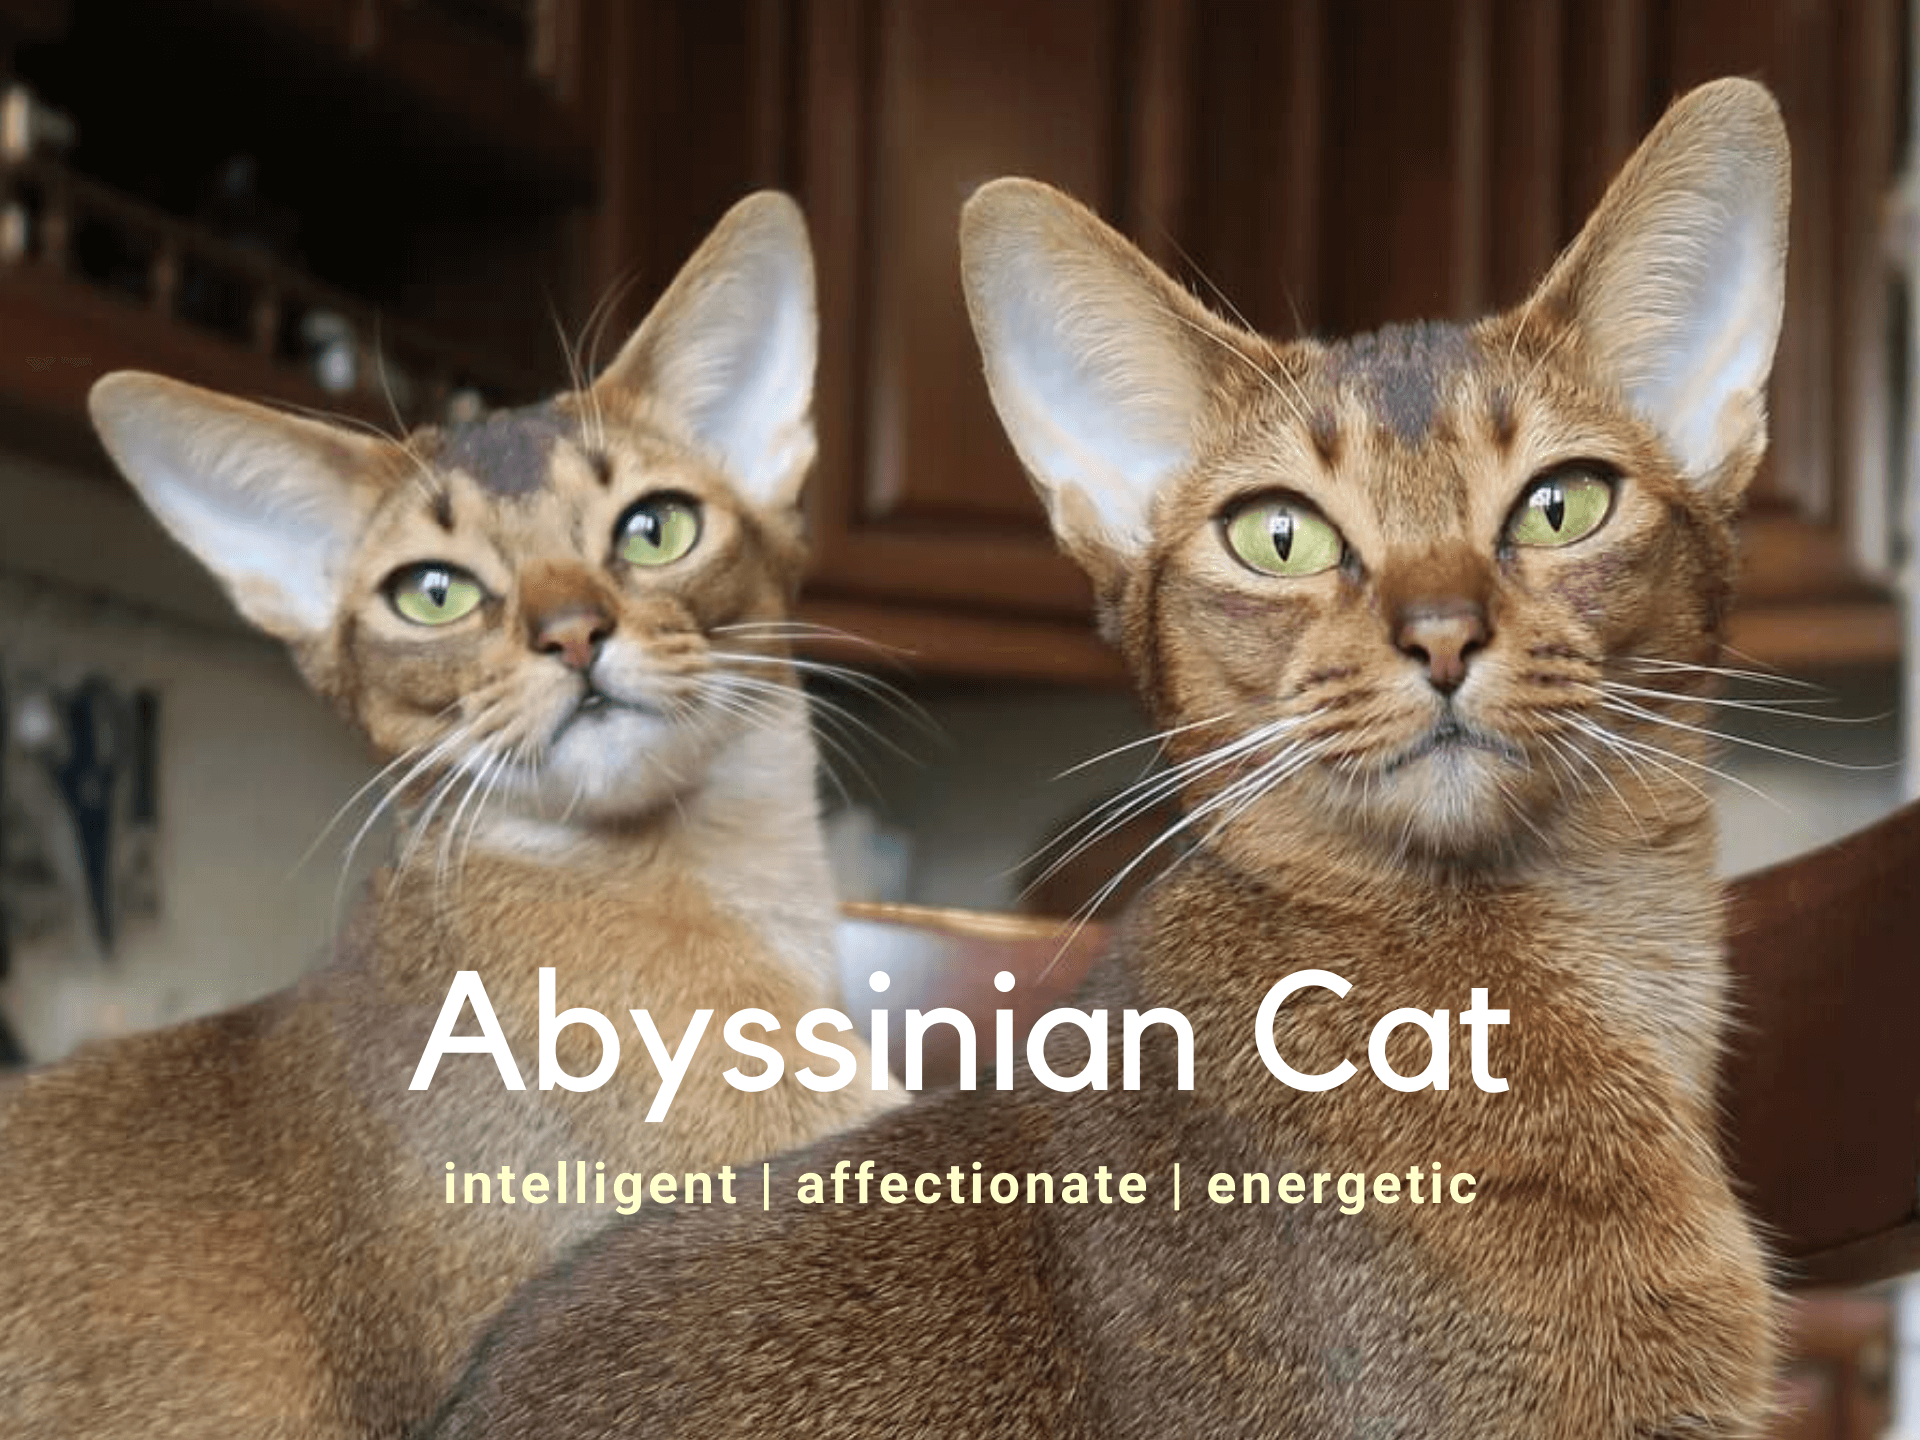 Abyssinian Cat - Breed Information